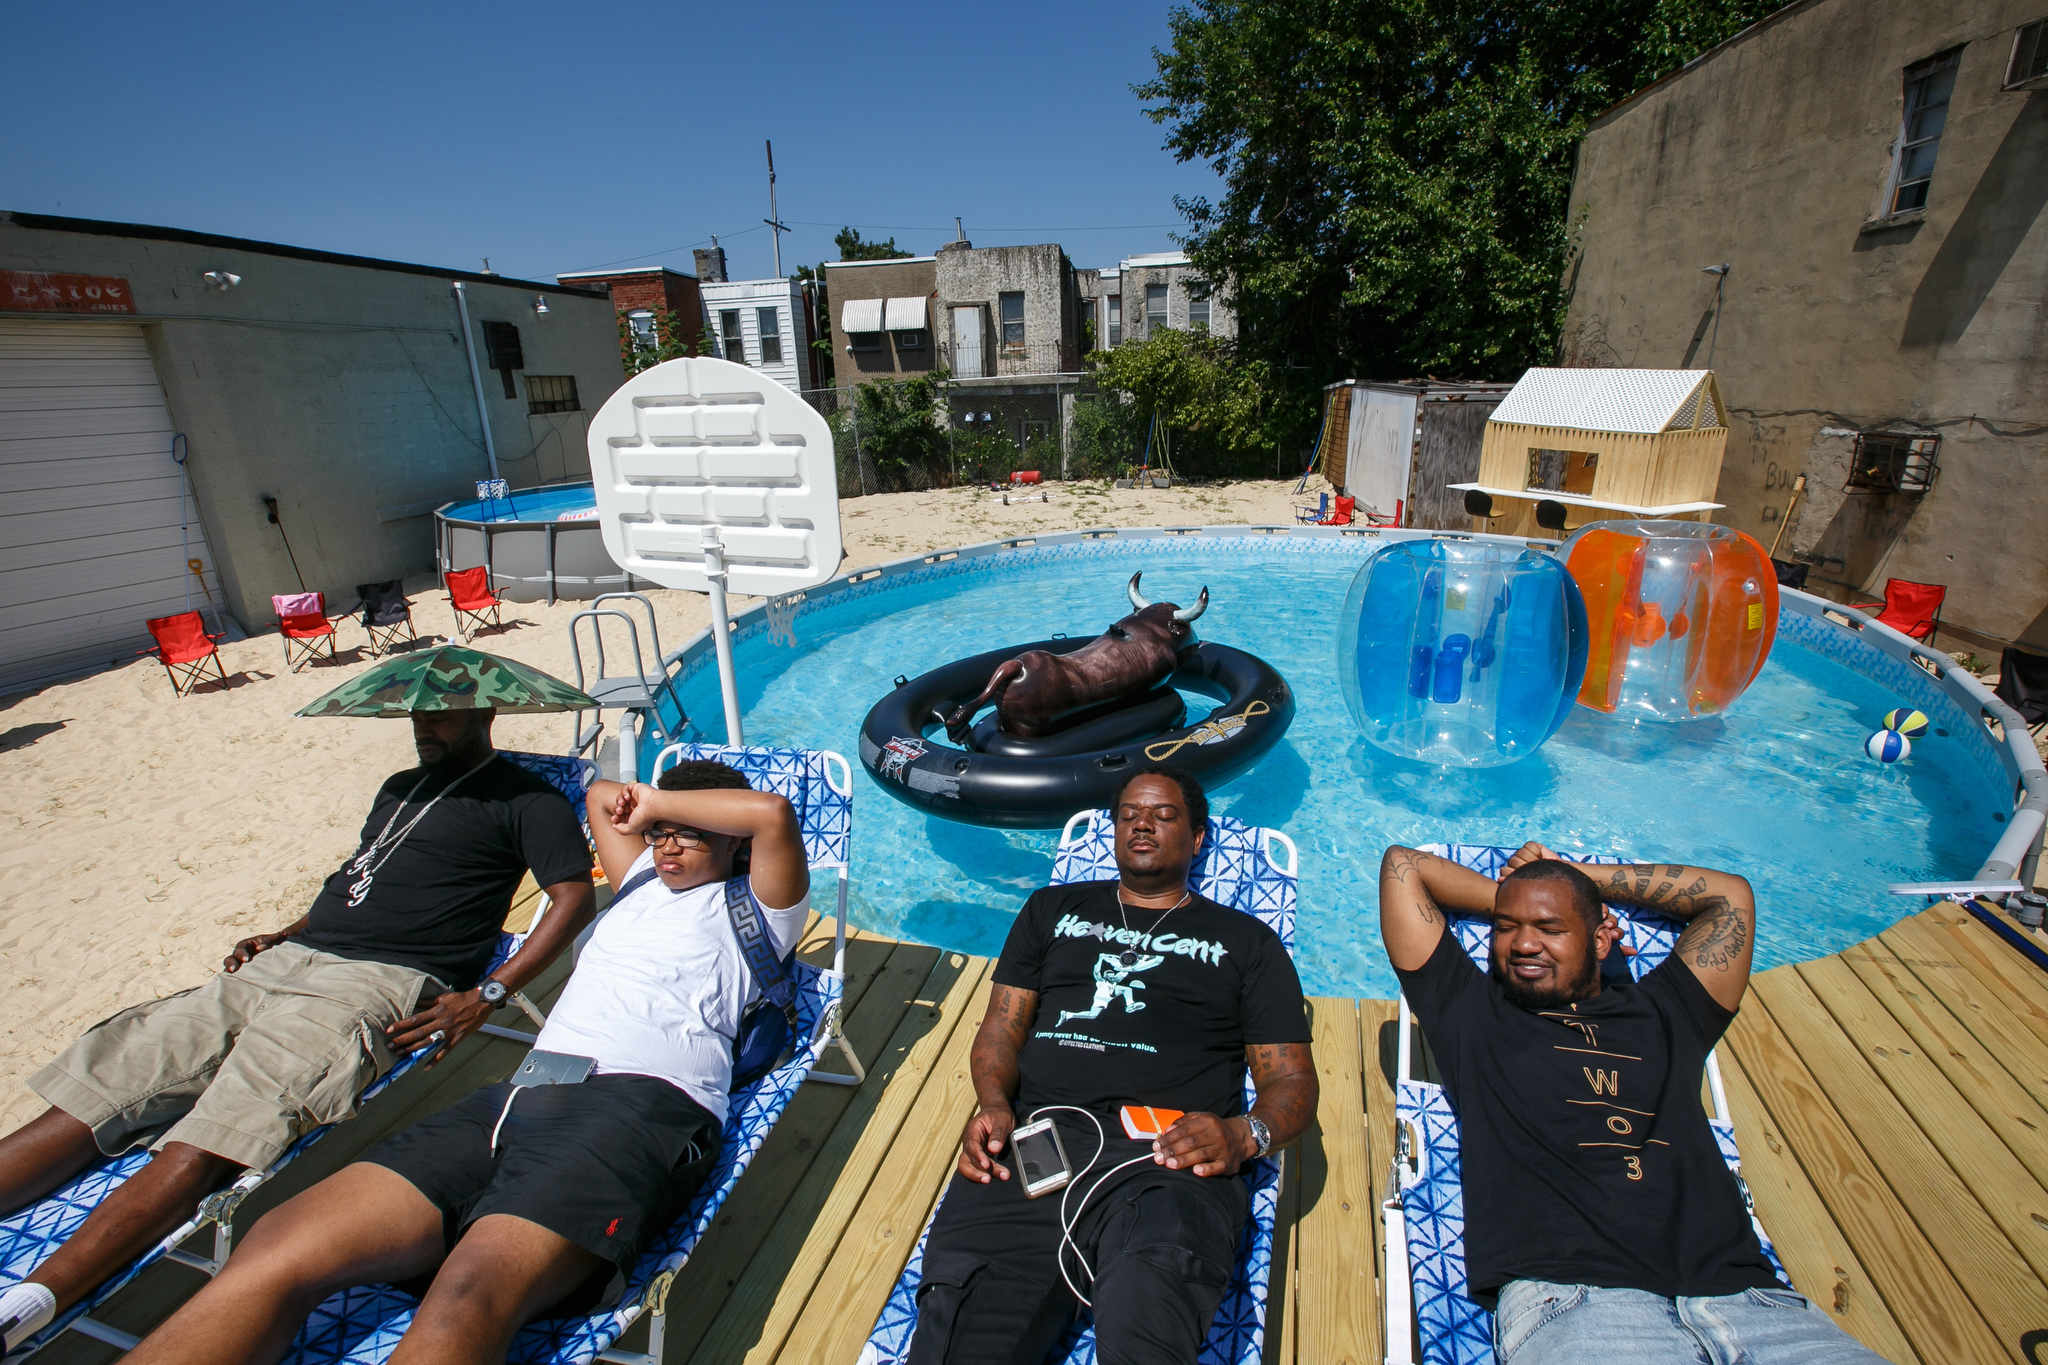 Relaxing poolside, the owners and promoter await an upcoming pool party on a vacant North Philadelphia lot Wednesday, July 11, 2018. They converted it into a miniature beach with sand, above ground pools, a wooden deck and beach furniture.